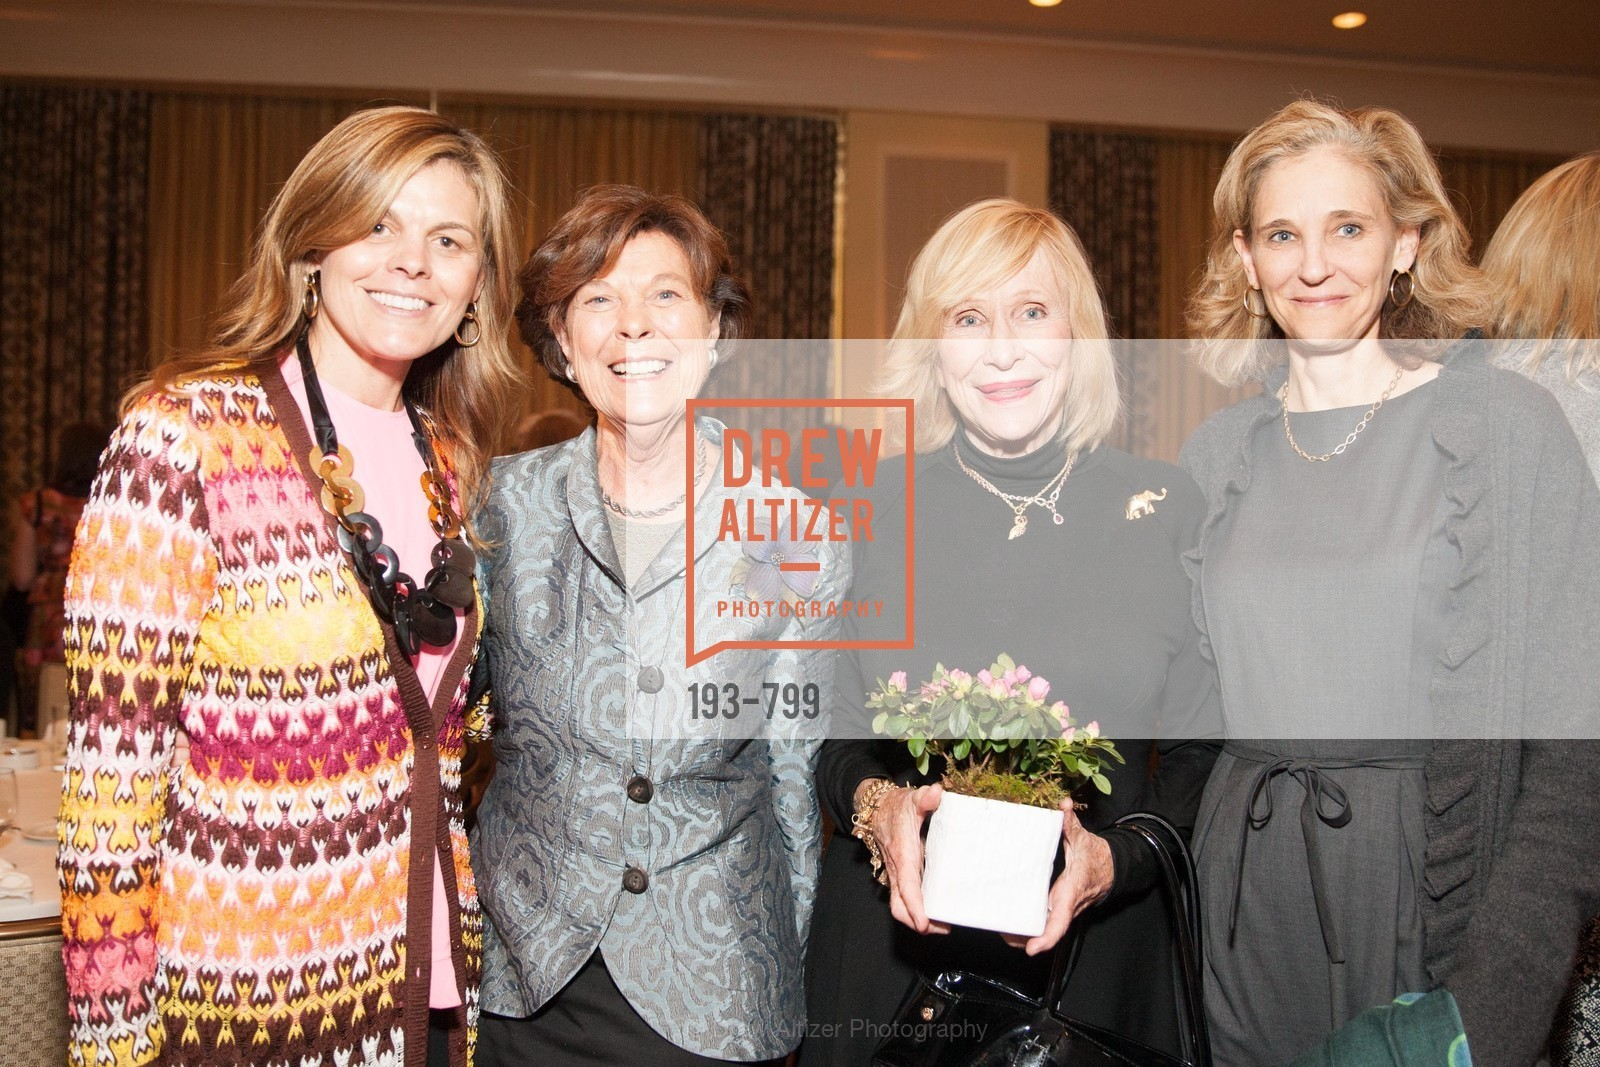 Annie Robinson Woods, Mary Robinson, Anne Seymour, Jennifer Biederbeck, COMPASSION & CHOICES - Empowerment Luncheon, US, April 23rd, 2015,Drew Altizer, Drew Altizer Photography, full-service agency, private events, San Francisco photographer, photographer california